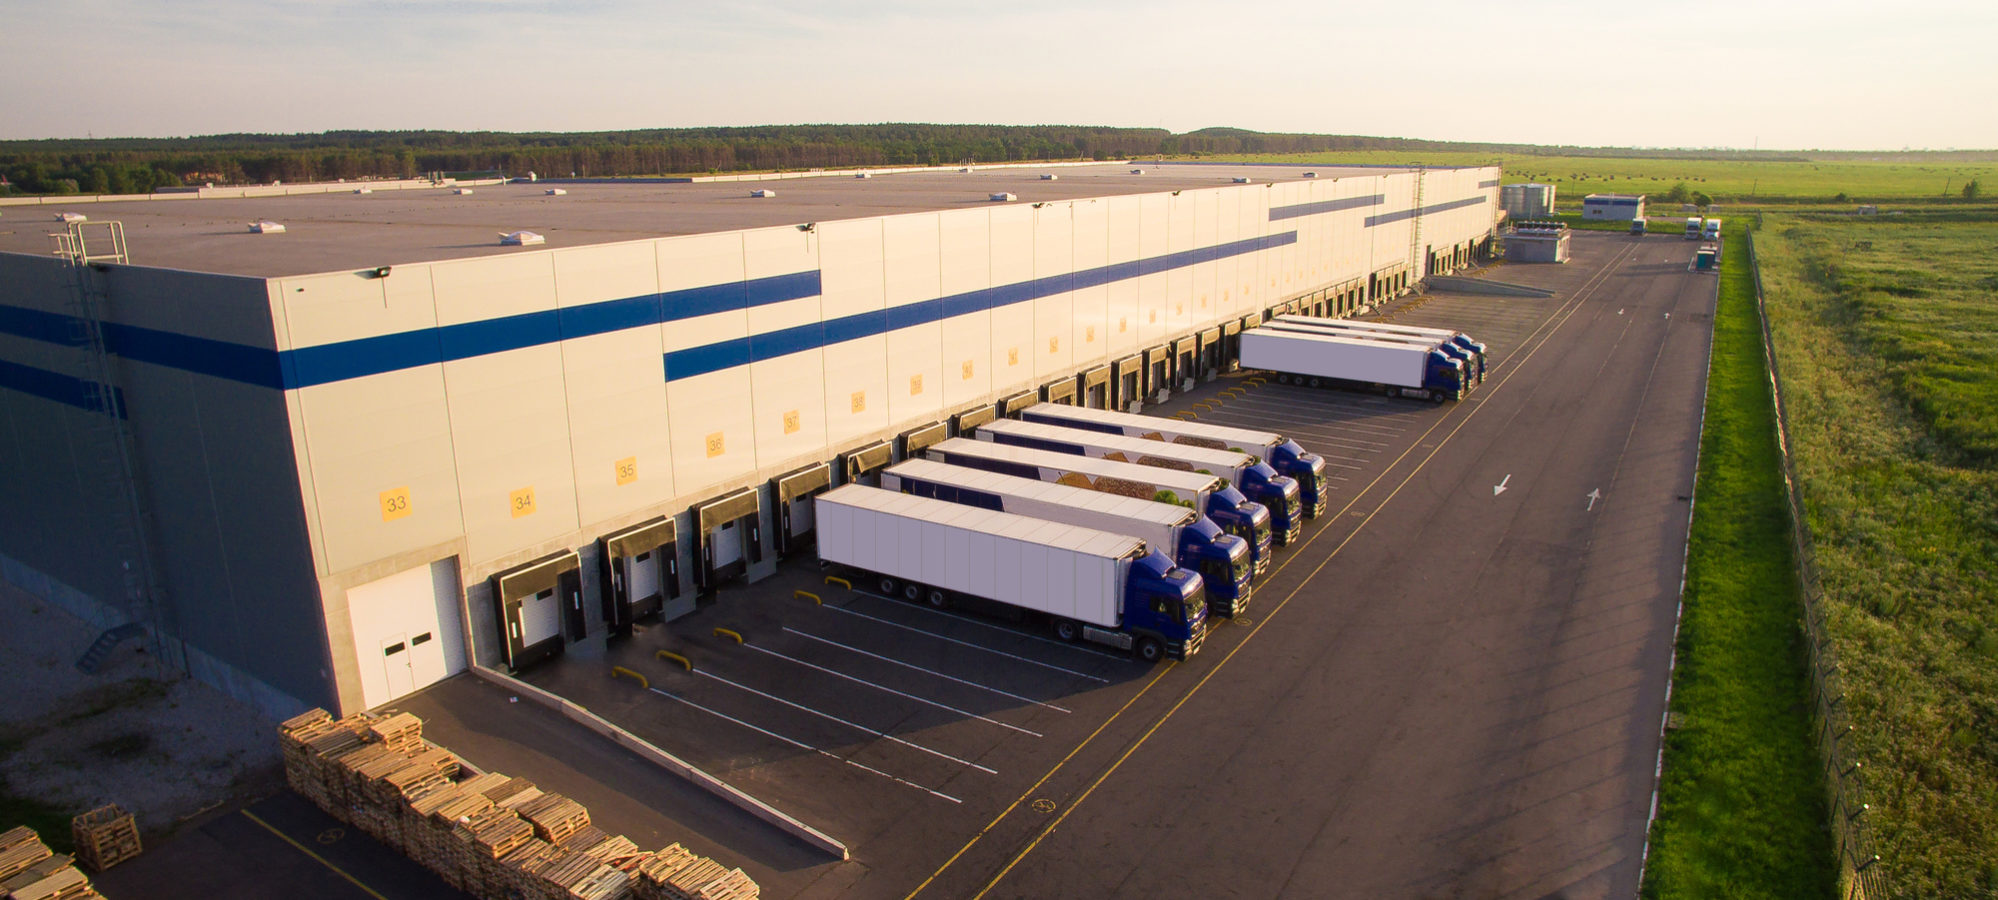 Distribution warehouse - business has gross receipts tax liability in multiple states